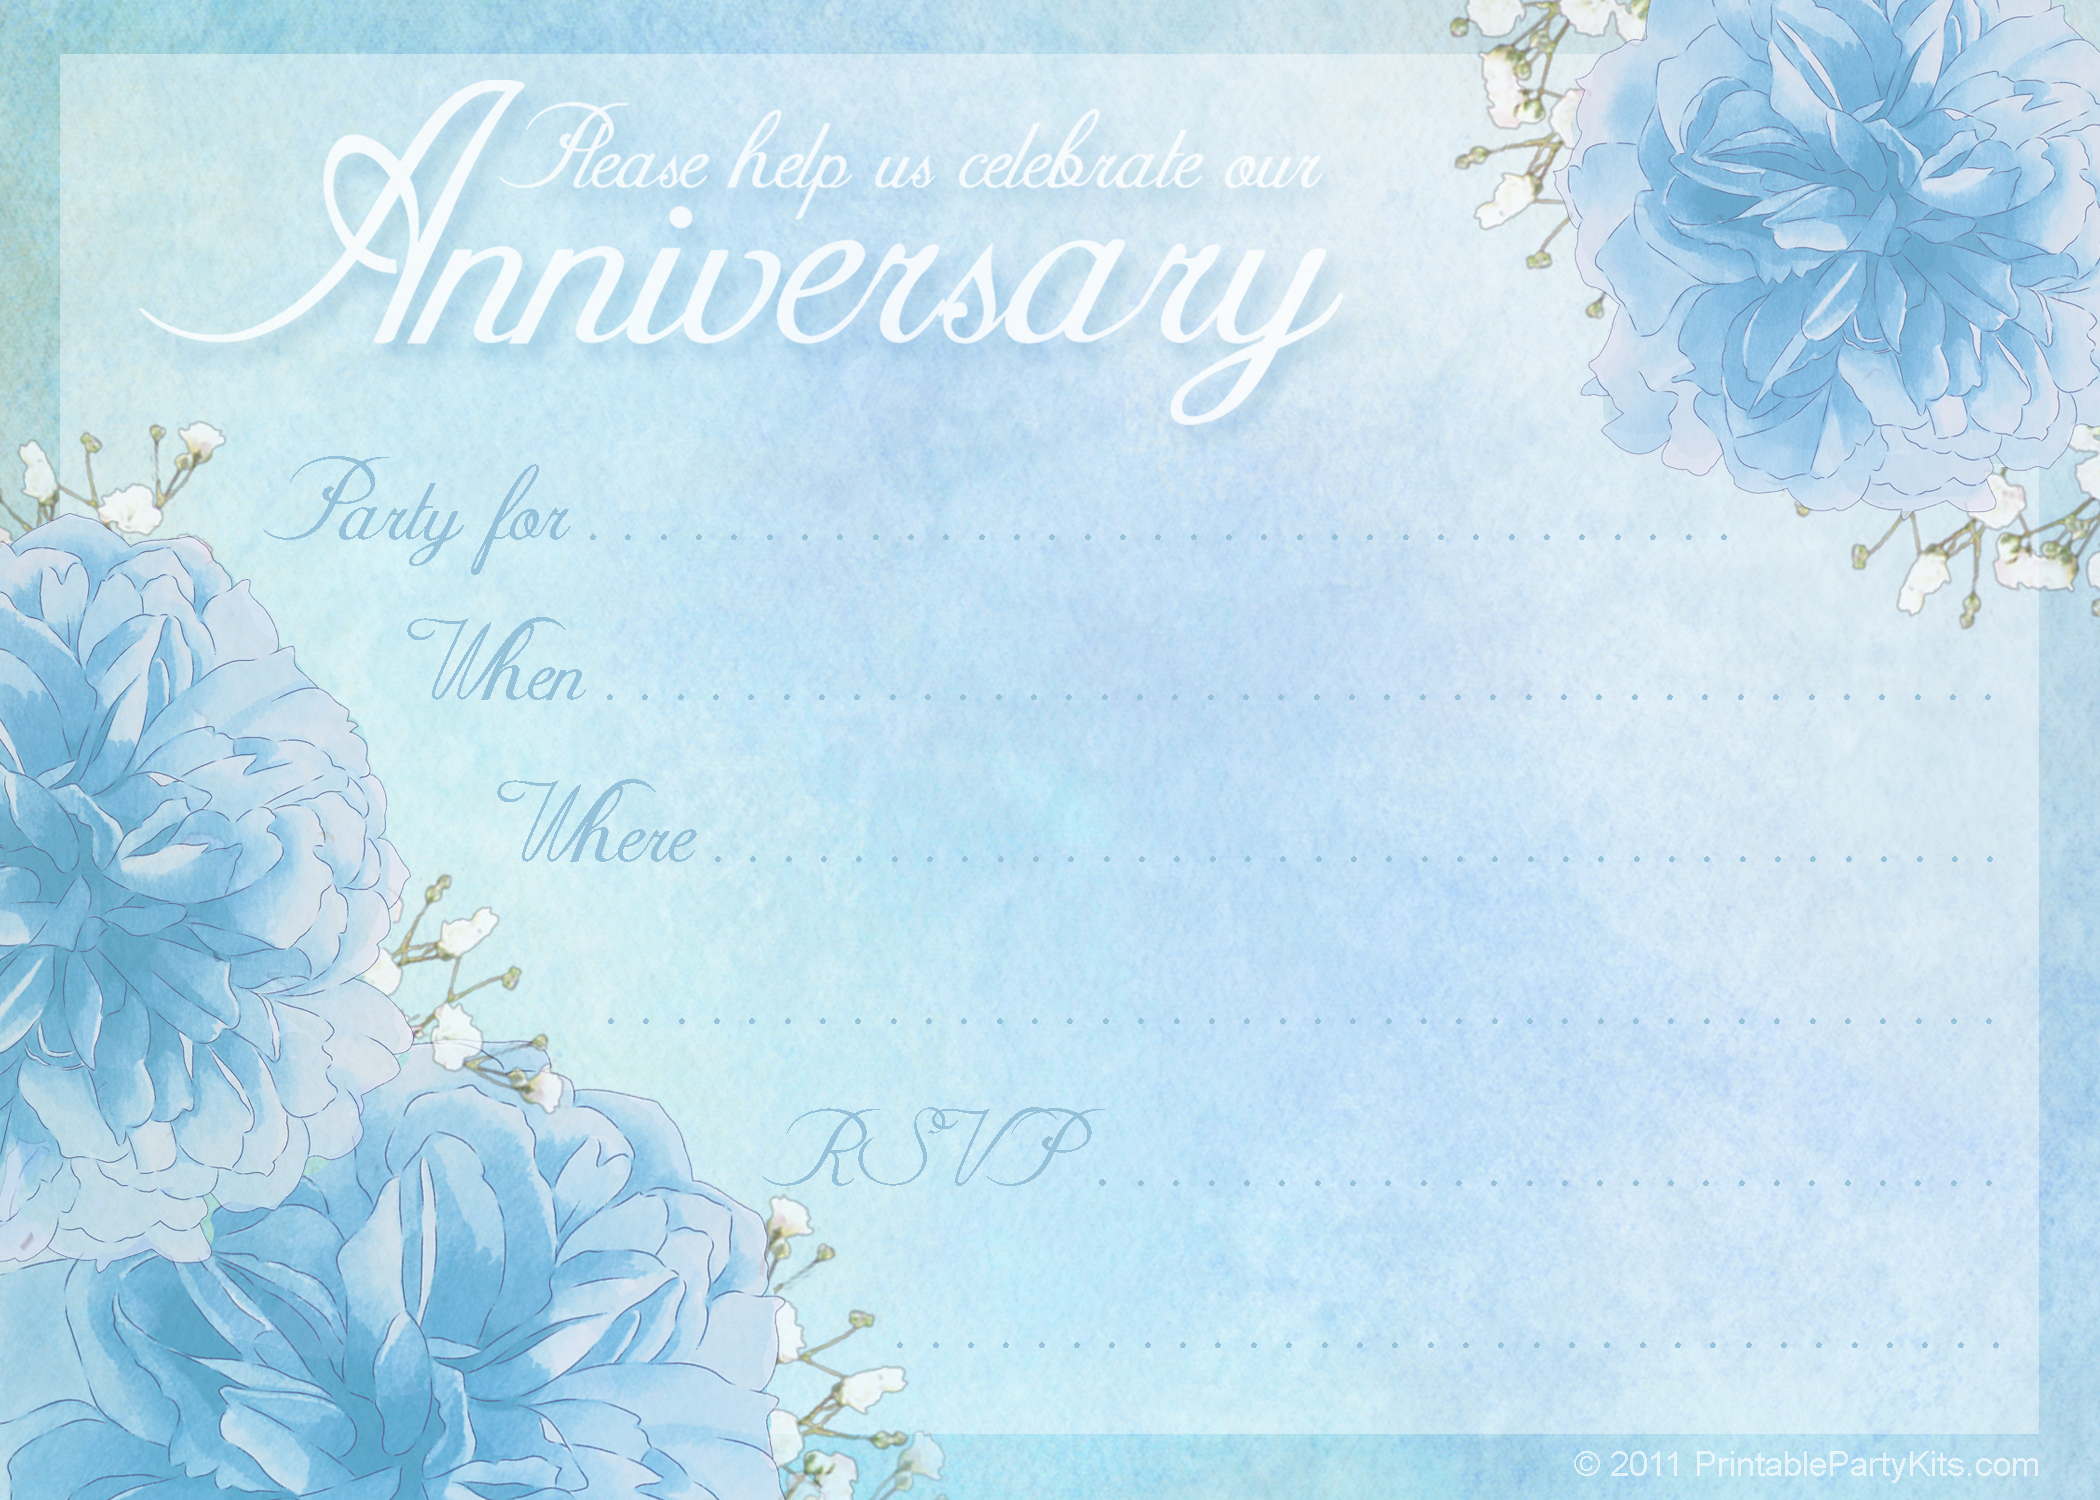 16 Wedding Anniversary Templates Free Images